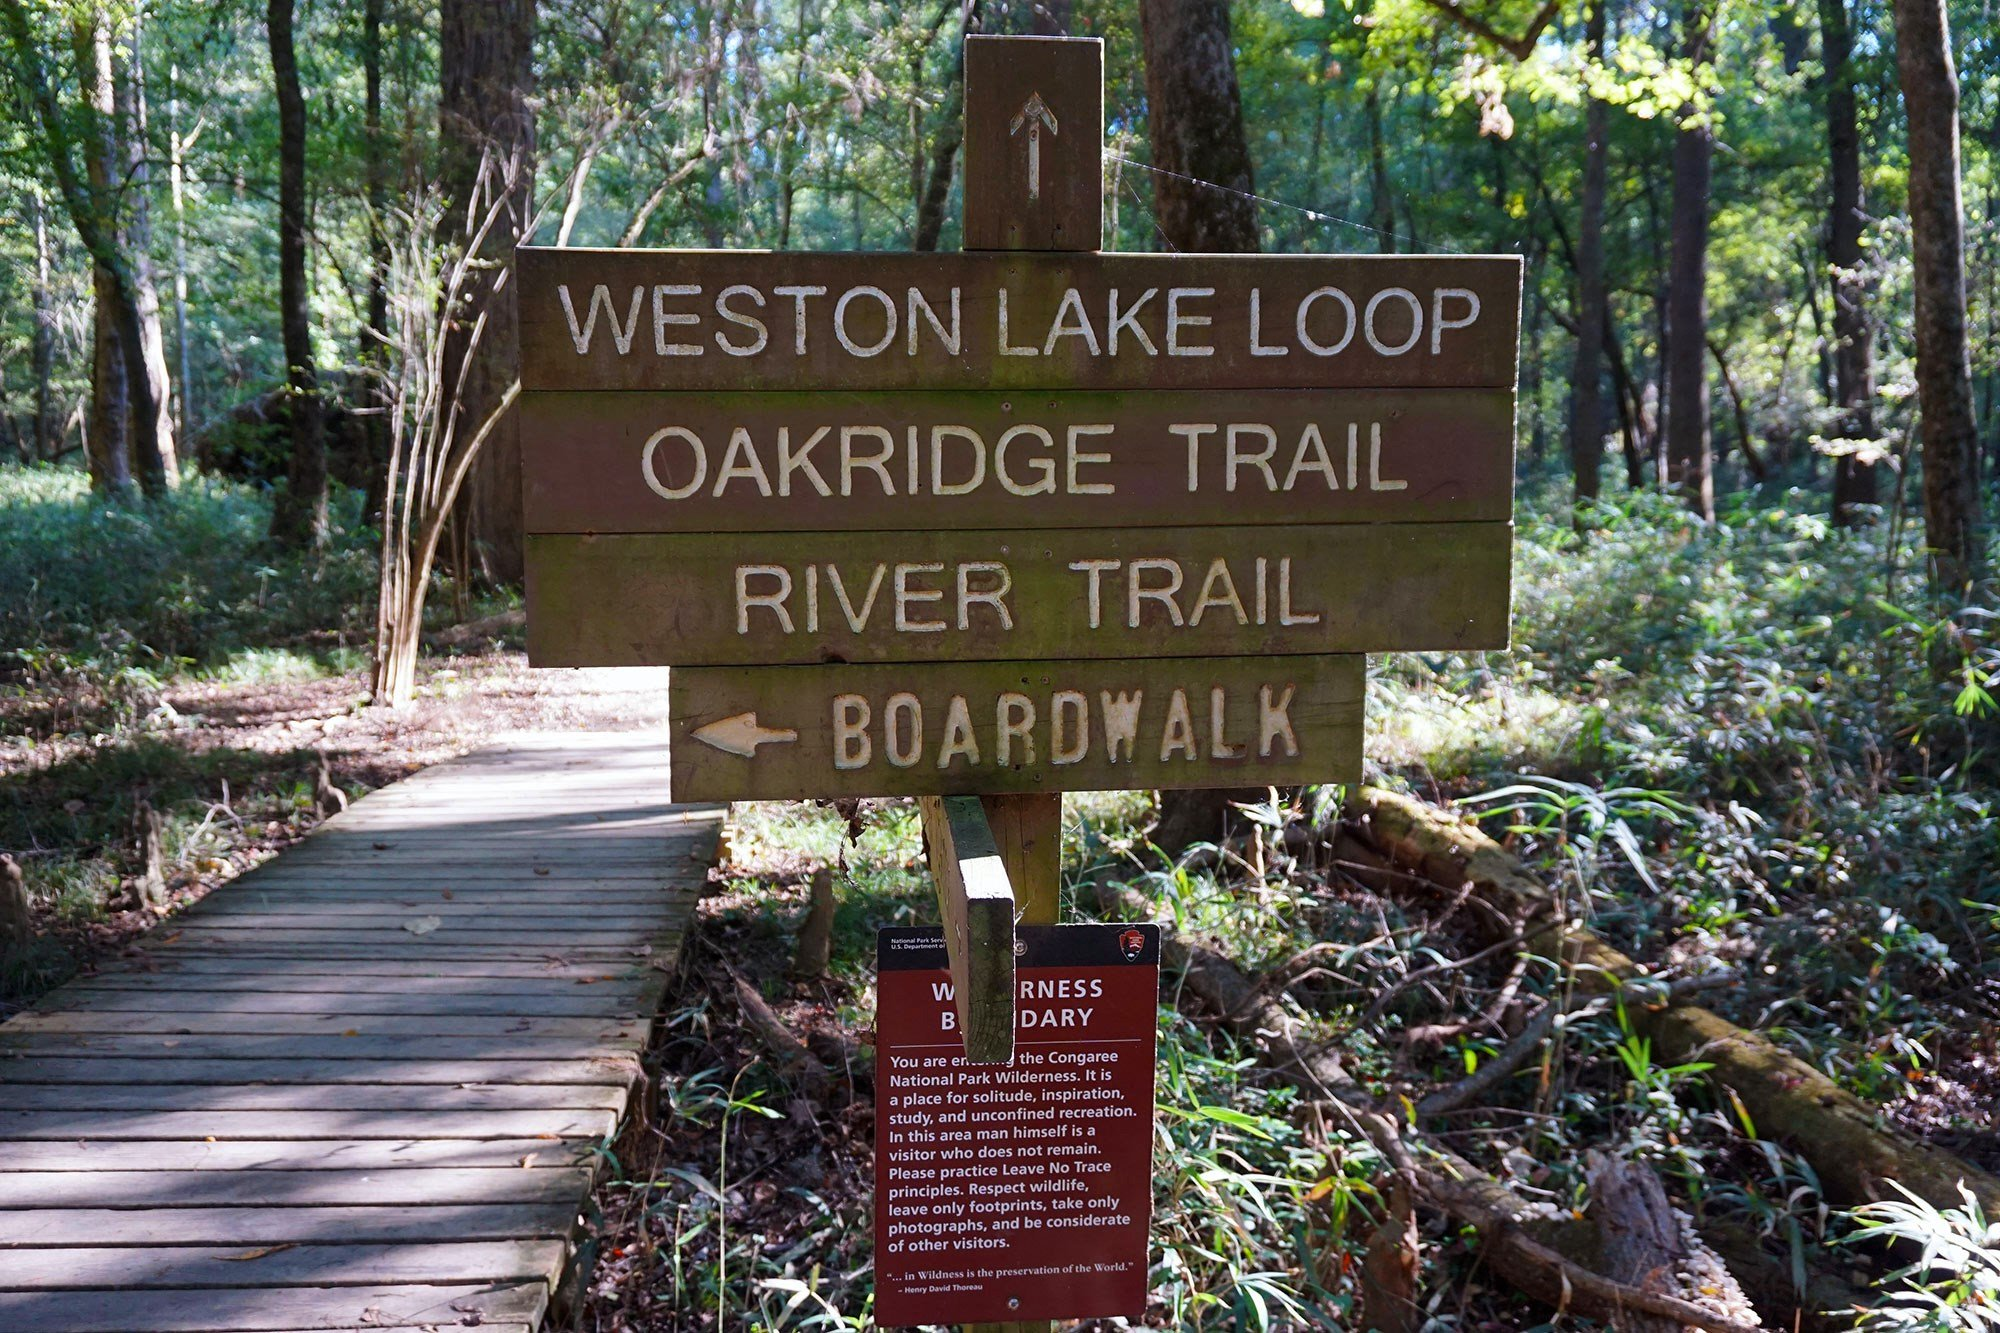 There are more than eight trails in the park that visitors can walk or hike. The trails can be self-guided or led by a park ranger.